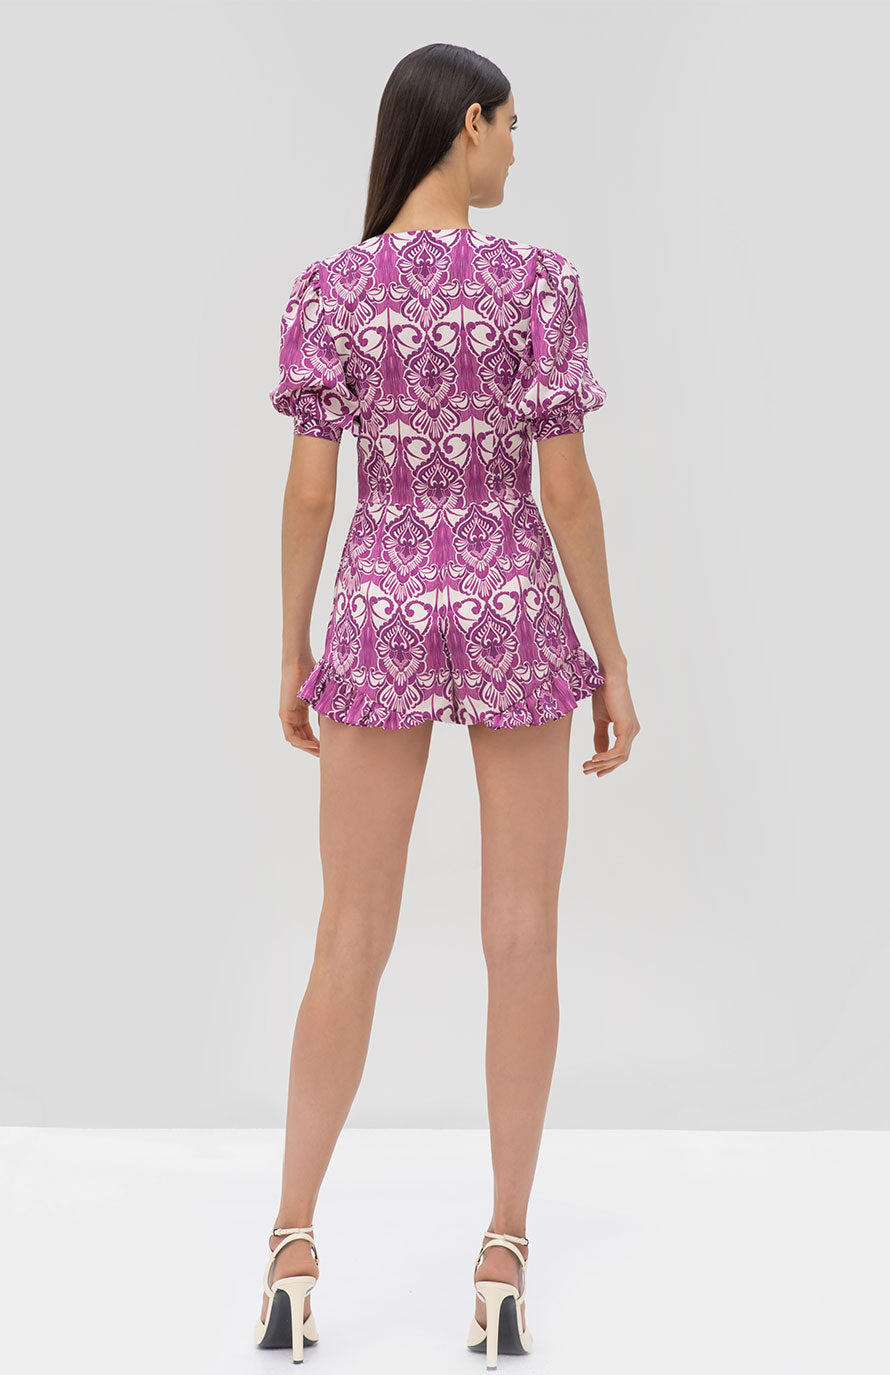 Alexis Indira Romper in Mulberry Palm - Rear View